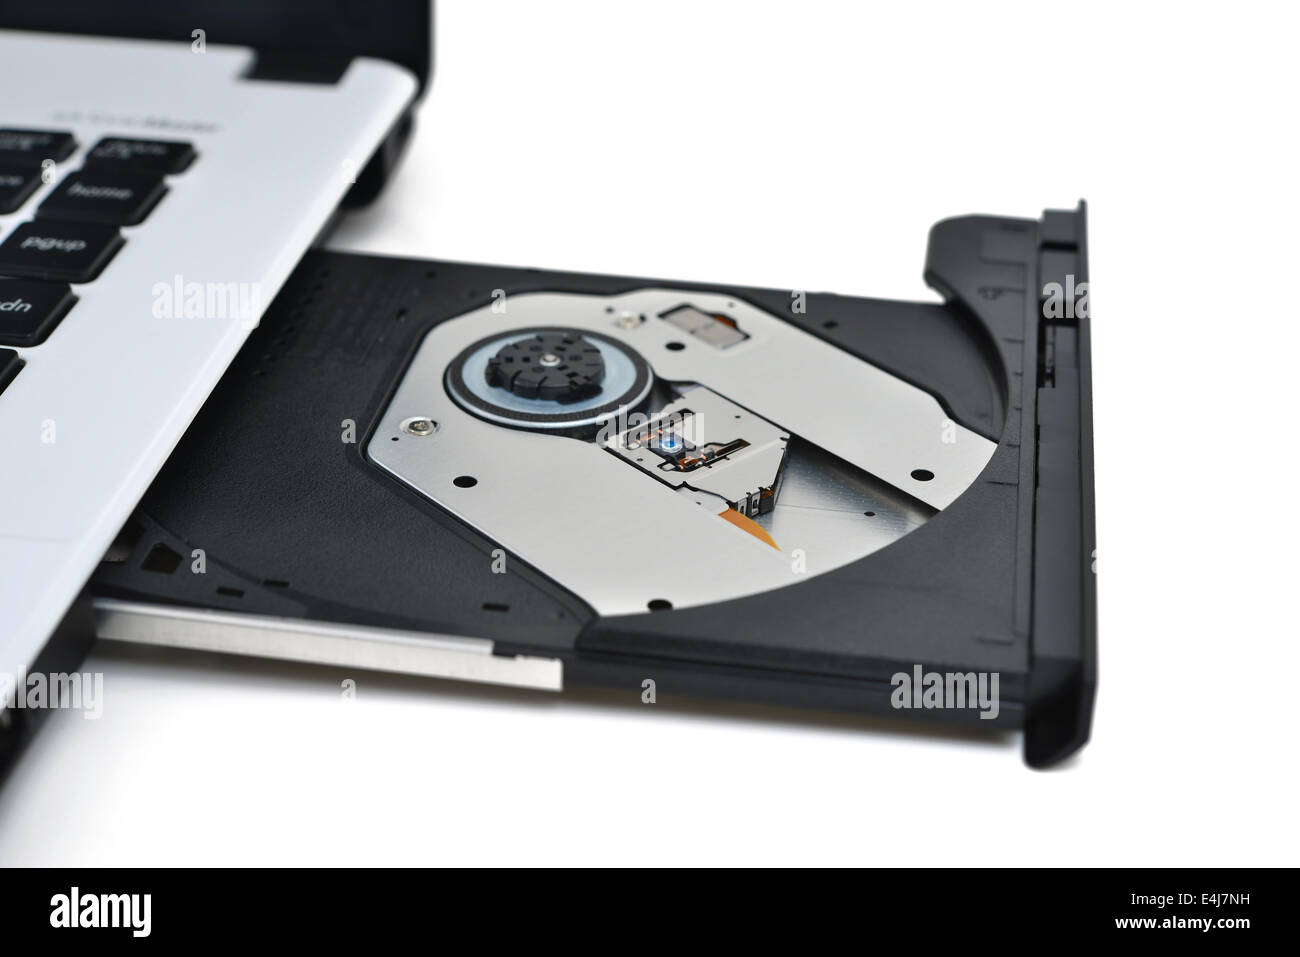 DVD Drive in Laptop - Stock Image